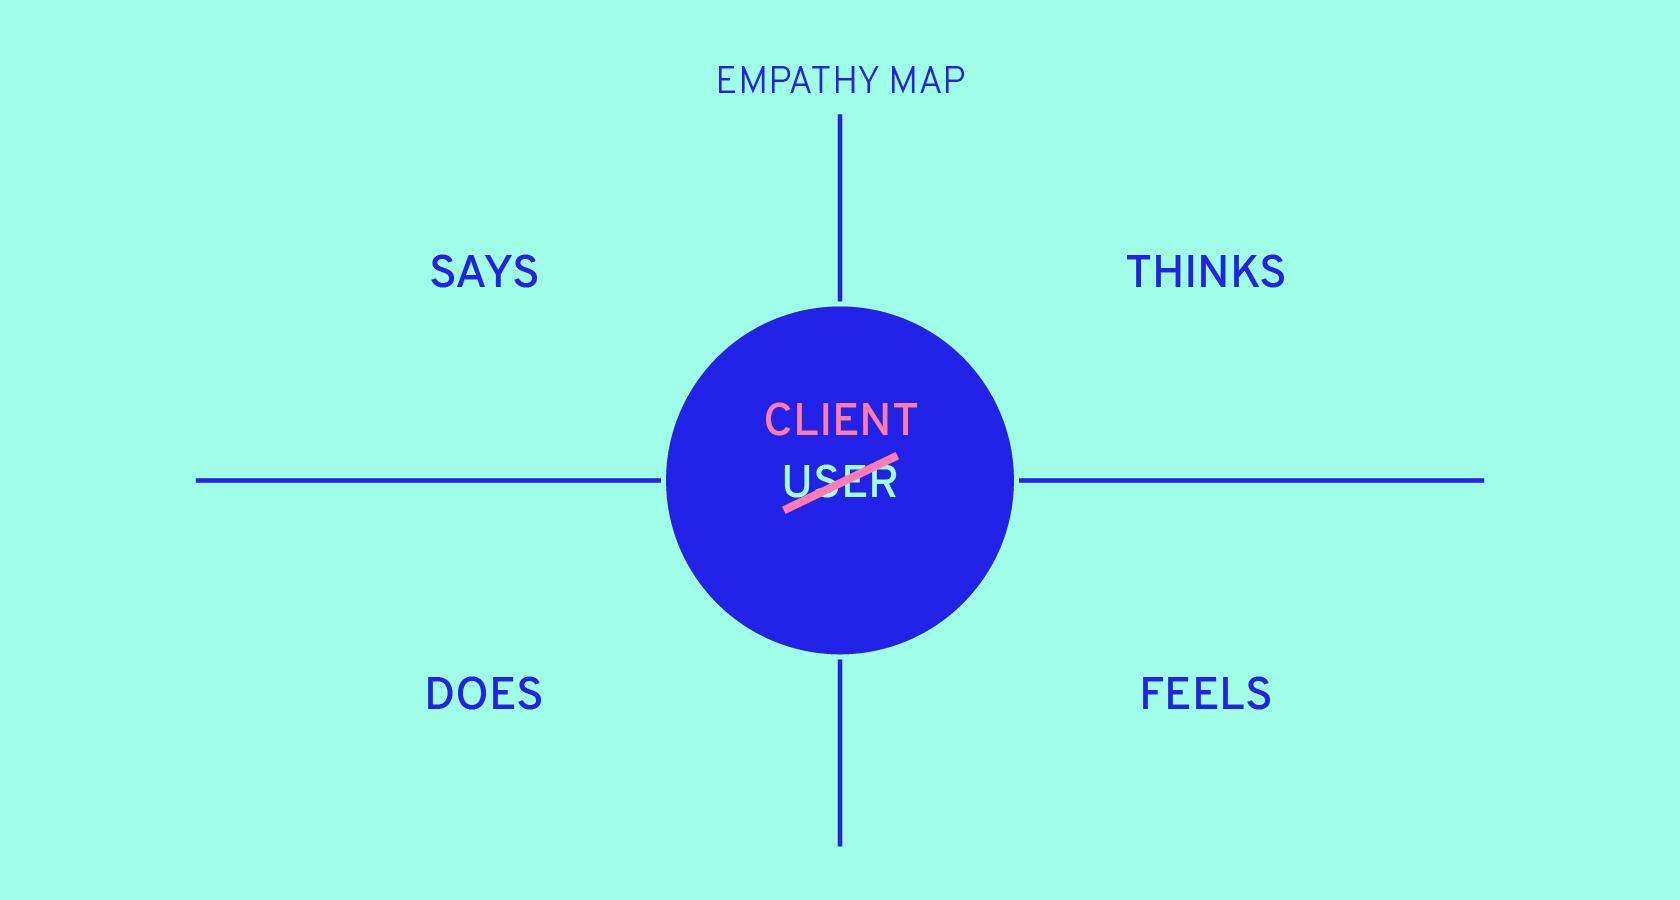 Empathy maps can be used in developing empathy with clients.